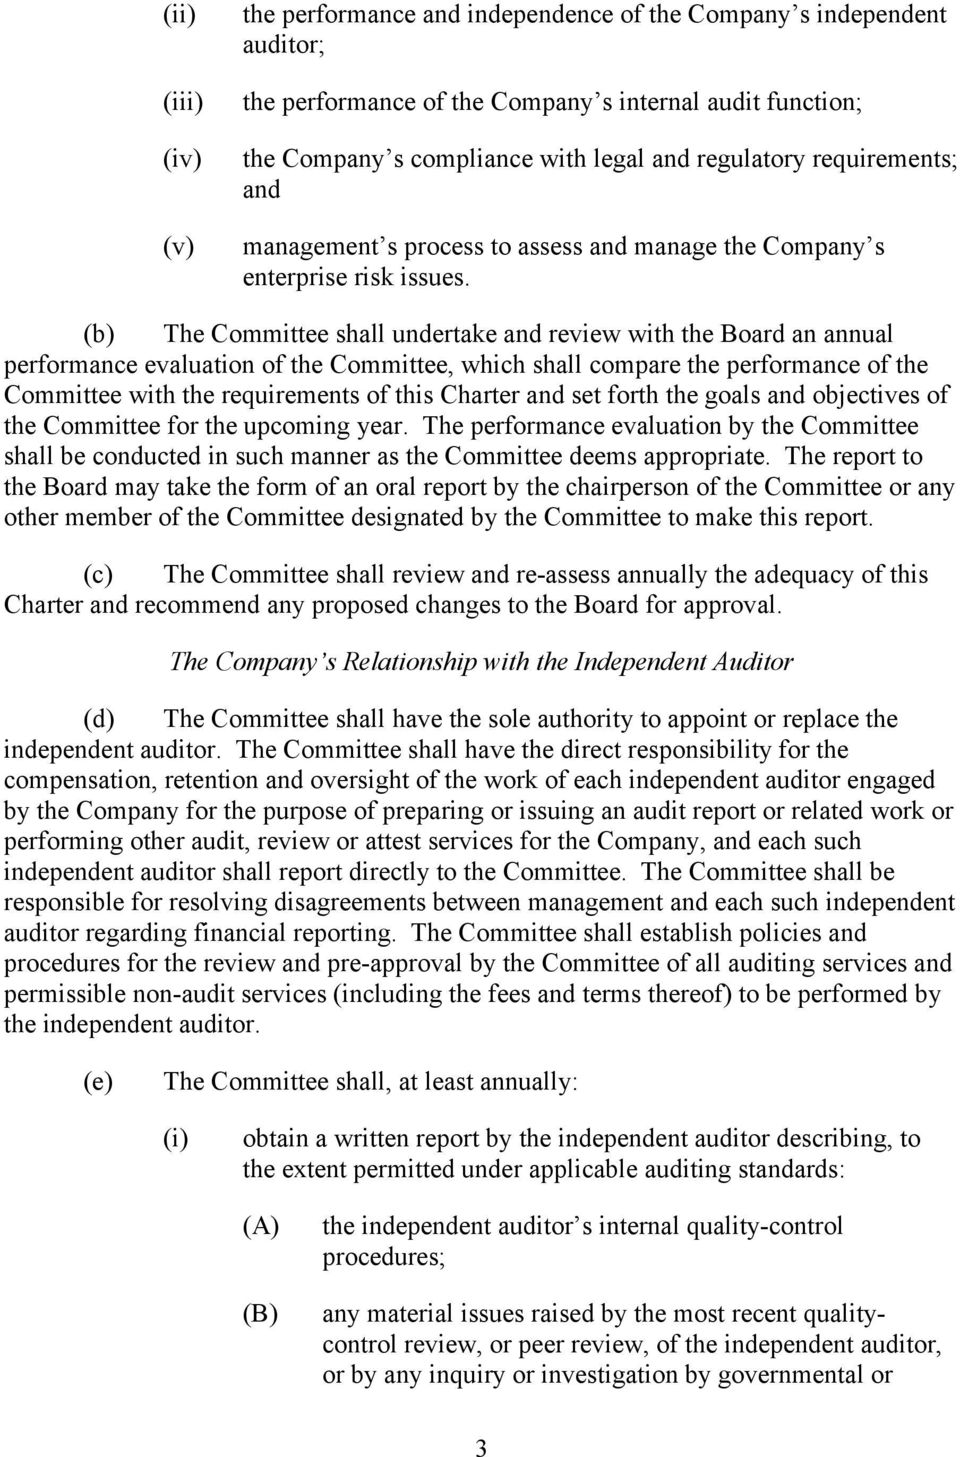 (b) The Committee shall undertake and review with the Board an annual performance evaluation of the Committee, which shall compare the performance of the Committee with the requirements of this